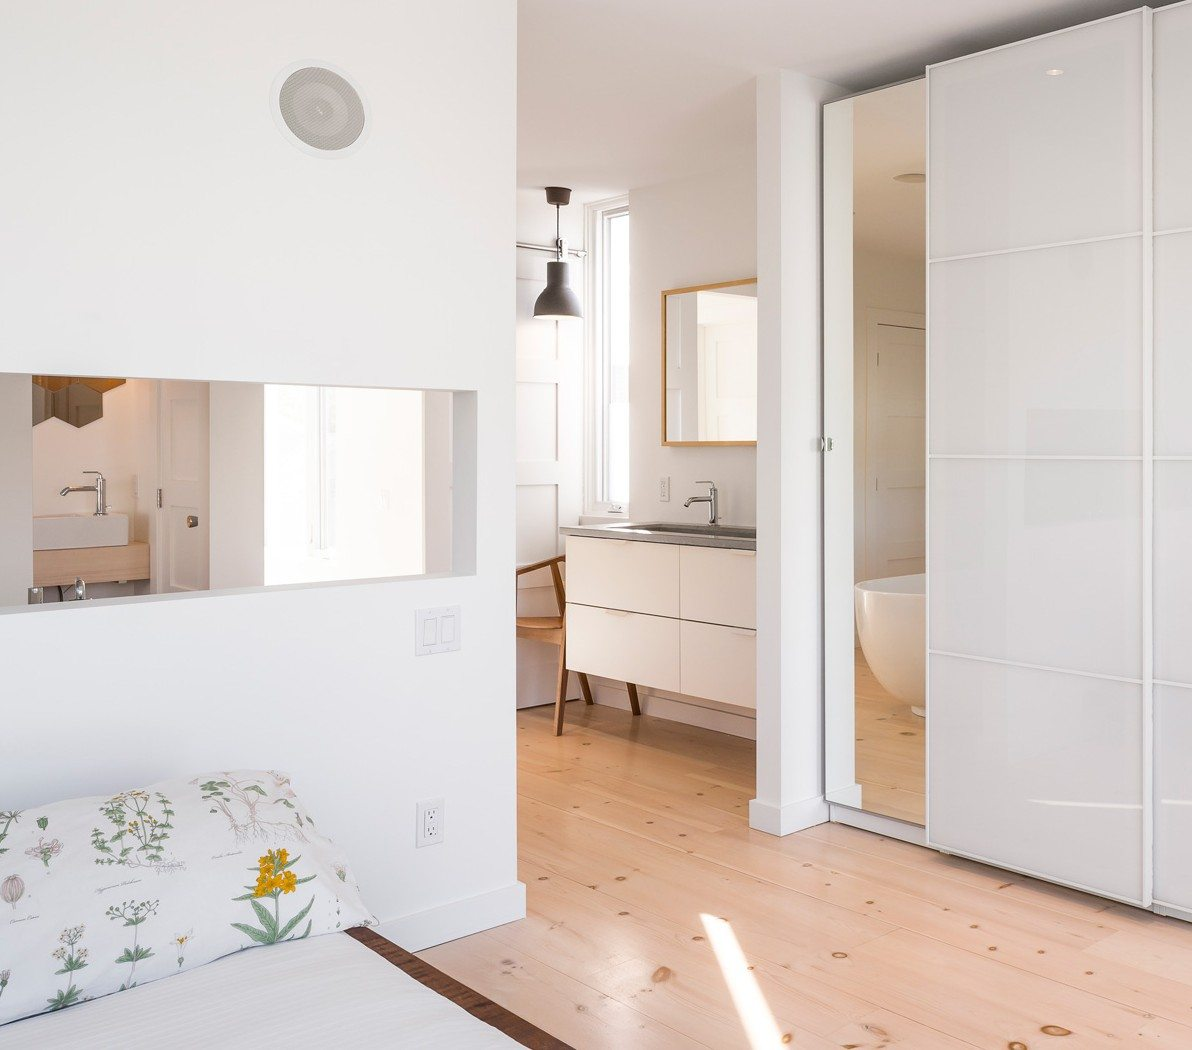 Located on the top floor, the master bedroom leads out onto an east-facing balcony. The cleverly designed cutout behind the bed allows light to stream into the ensuite bathroom, just behind the wall. Photo: Doublespace Photography